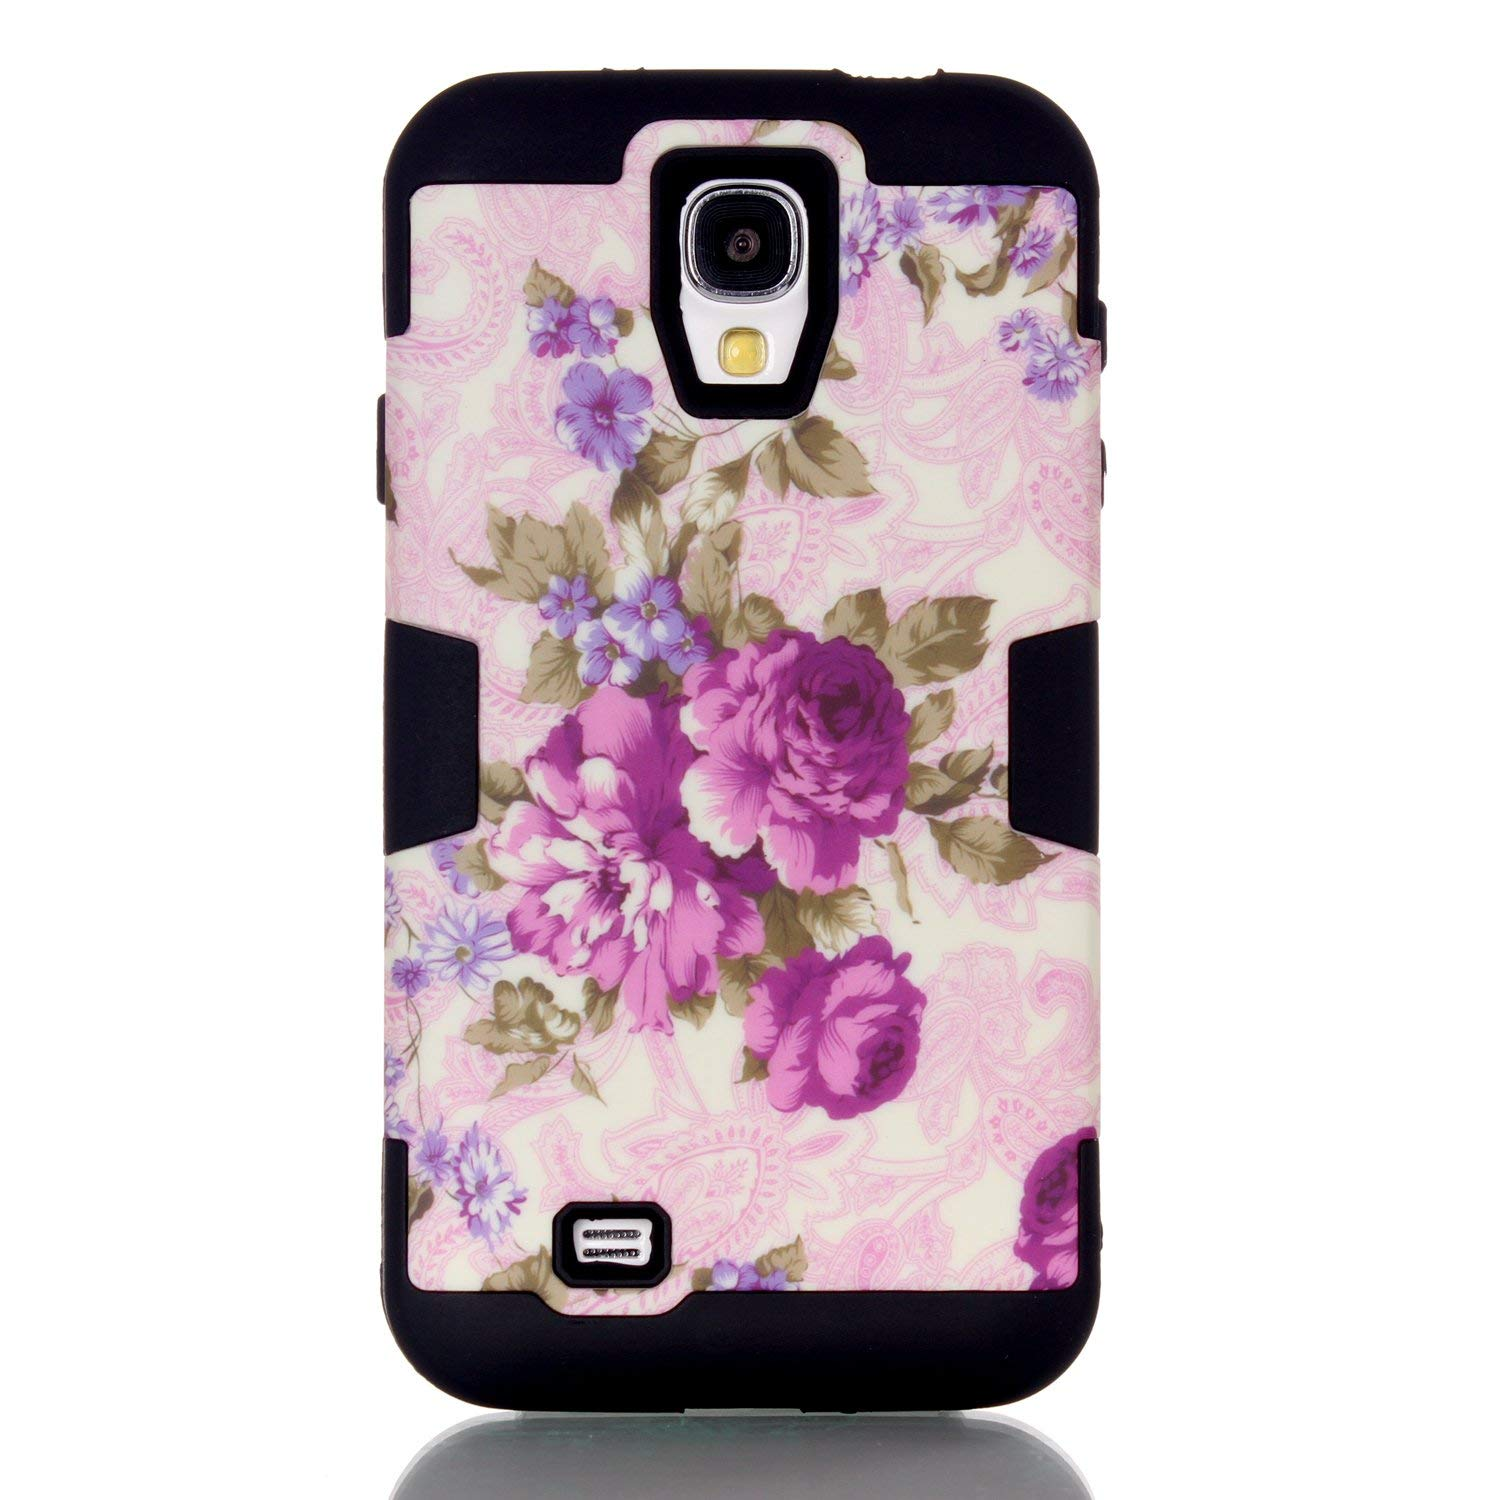 Galaxy S4 Case, S4 Case, Rosepark(TM) Purple Flowers Pattern Shock-Absorption / High Impact Resistant Bumper Hybrid Dual Layer Armor Defender Full Body Protective Case Cover (Hard Plastic with Soft Silicon) for Samsung Galaxy S4 / Galaxy i9500(Black), With Screen Protector, Stylus Pen and Cleaning